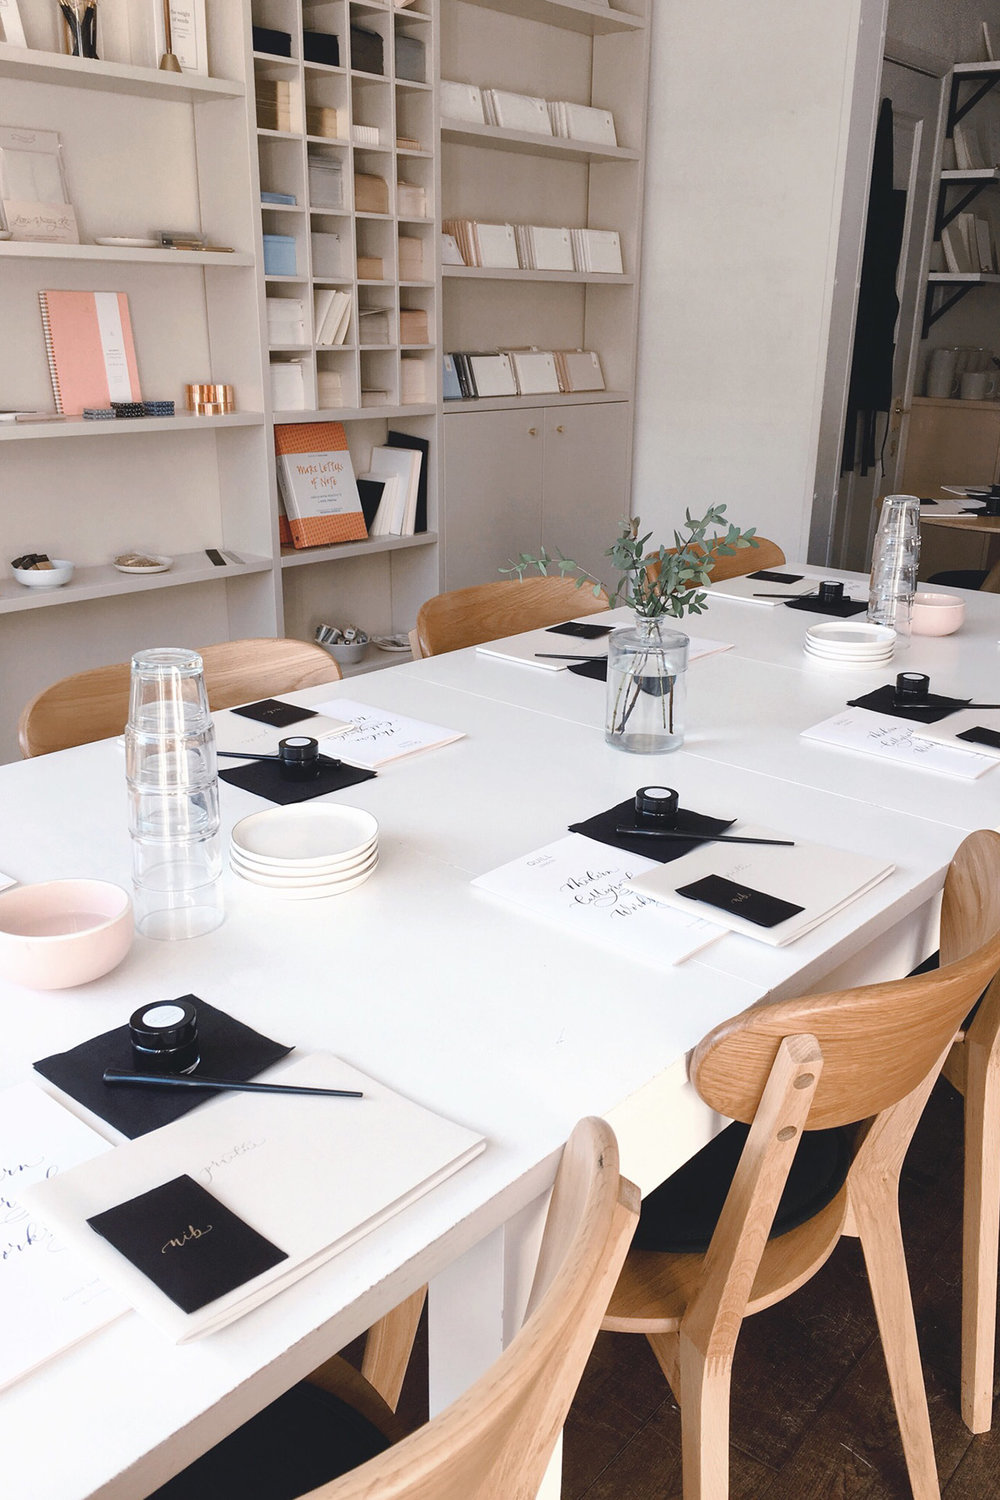 quill london modern calligraphy workshop - Uma Conversa all Things Paper com a Chloe (and Lucy) from Quill London